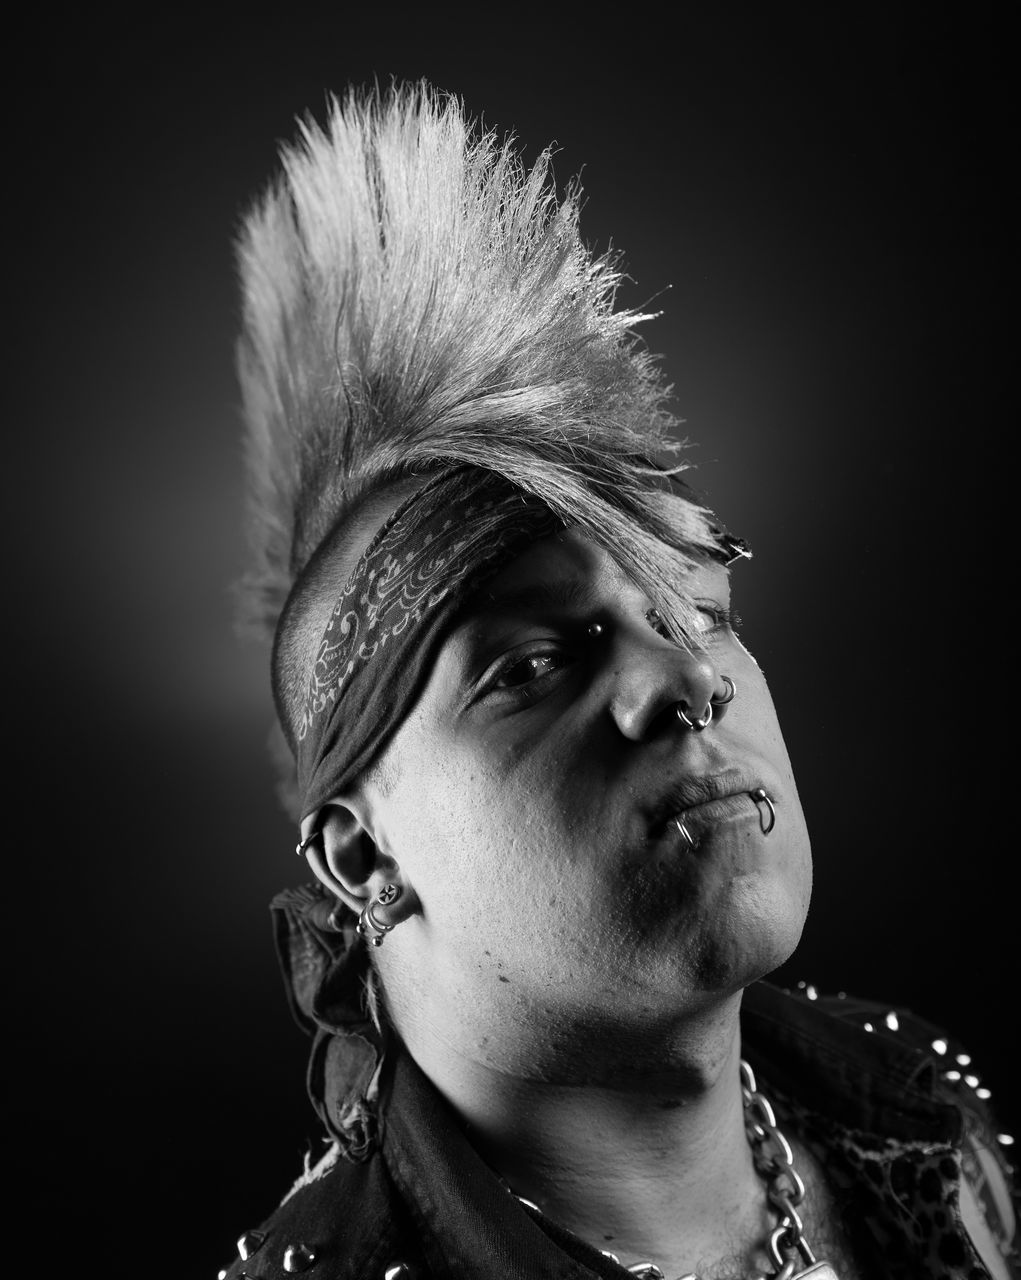 Portrait Of Man With Spiky Hair Against Black Background